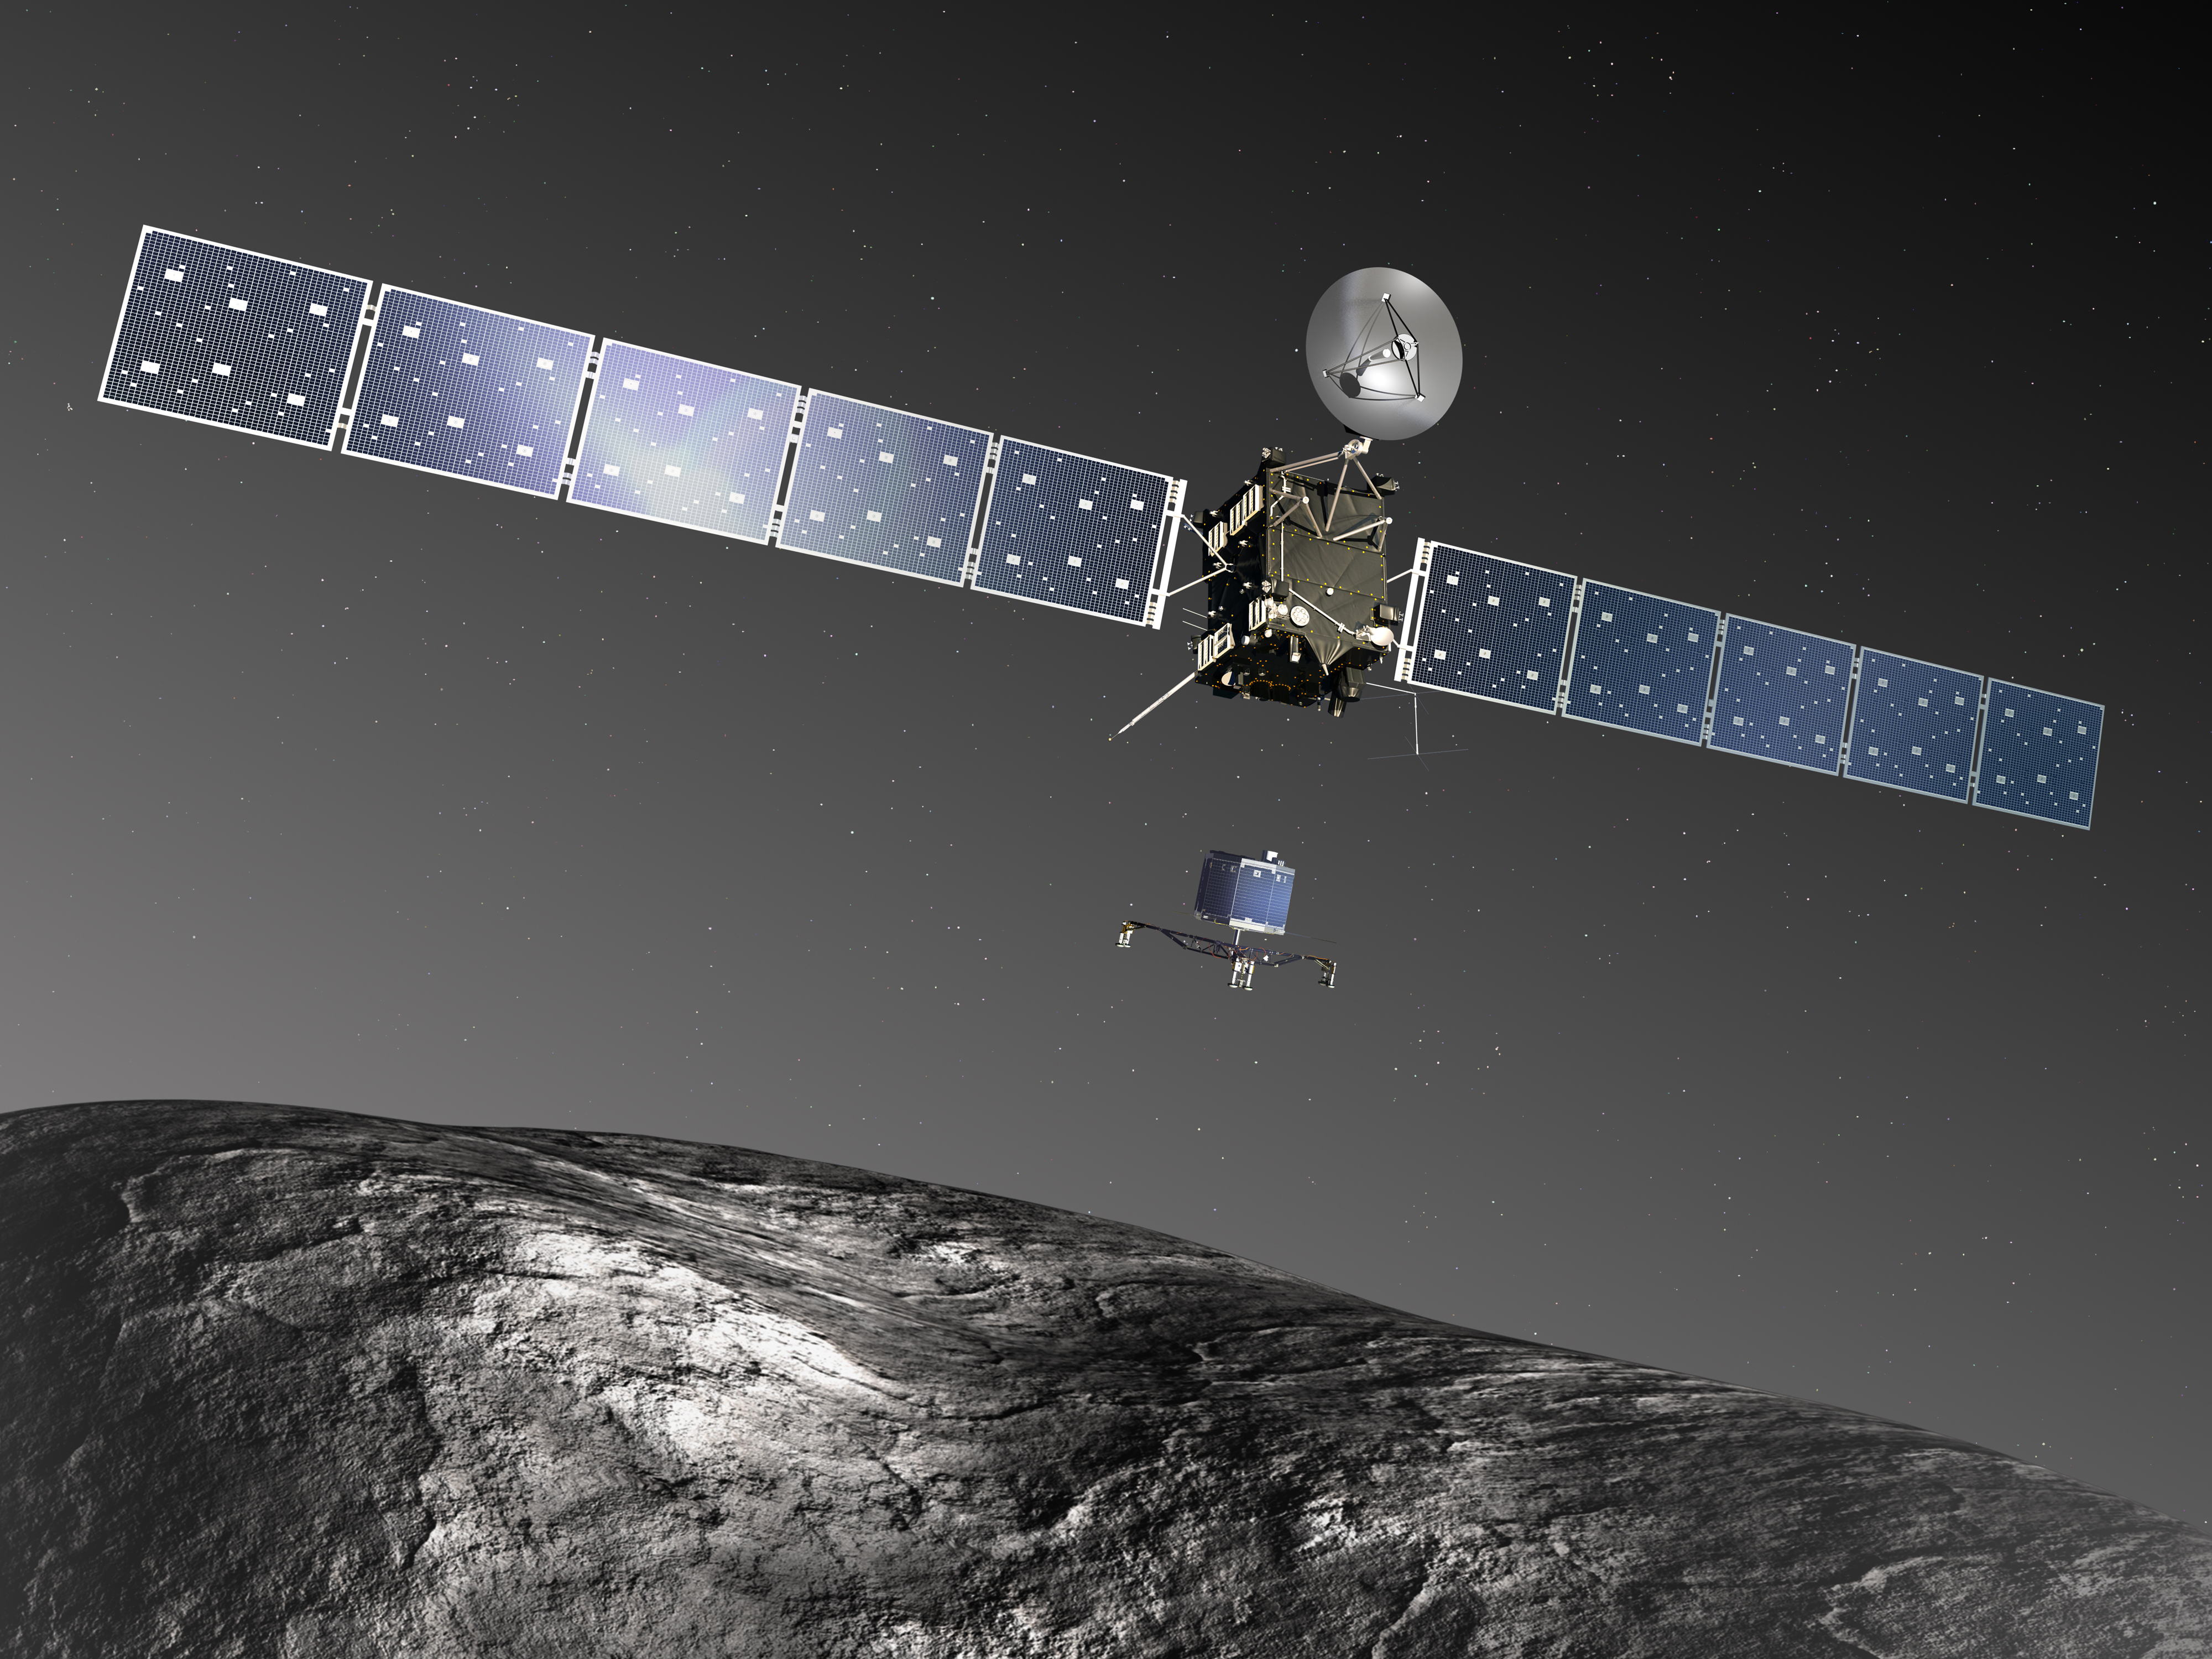 Photos: Europe's Rosetta Comet Mission in Pictures